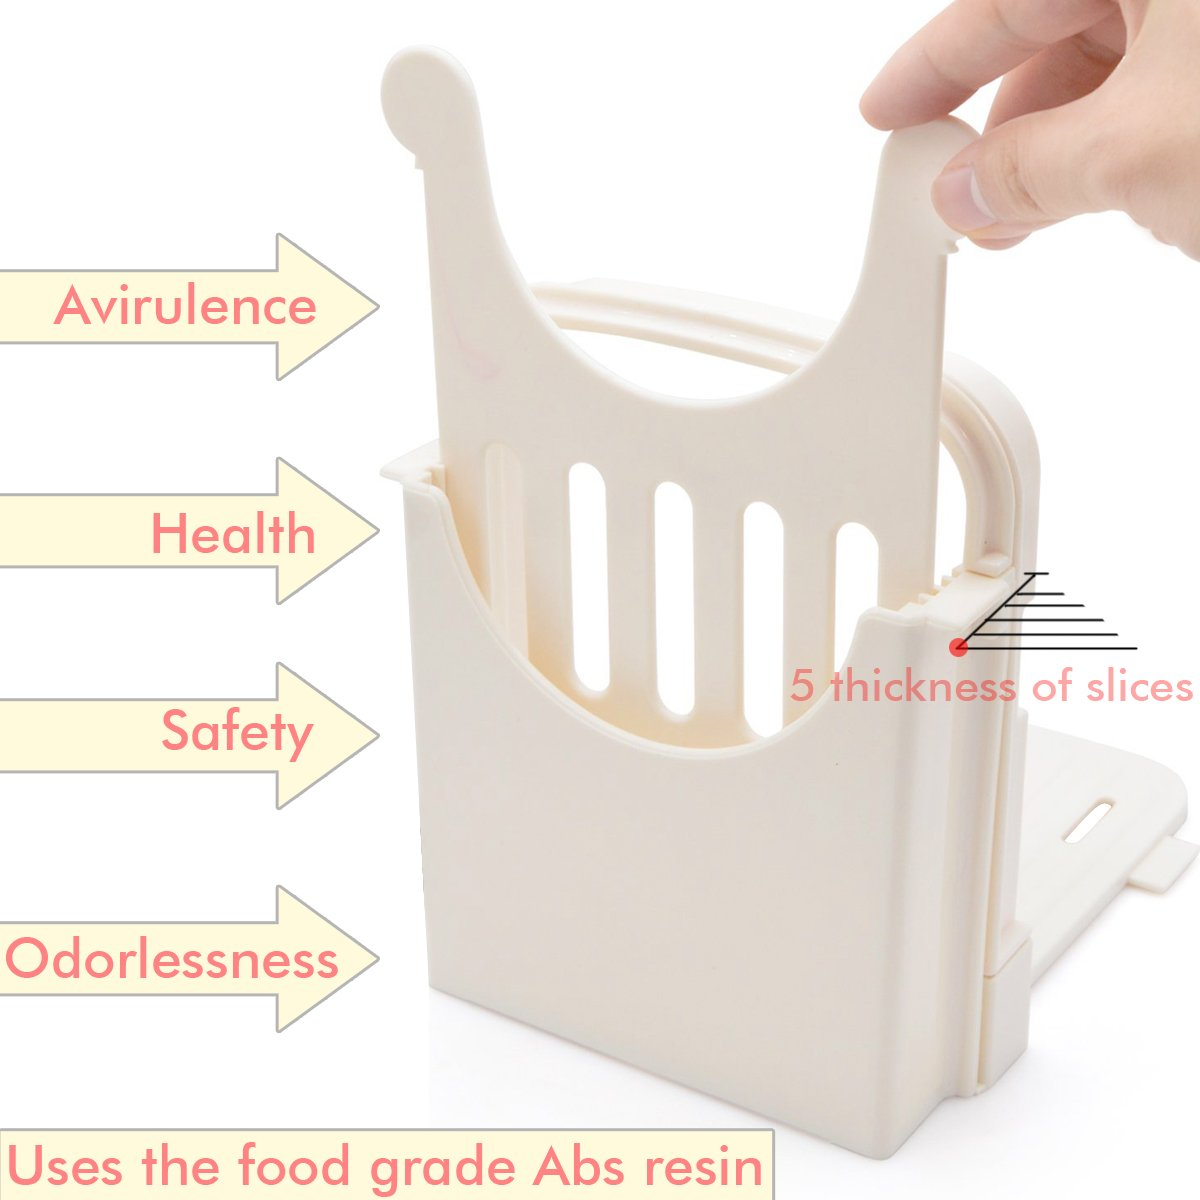 Bread Slicer Customization Toast Slicer Loaf Slicer Cutter for Homemade Bread ABS Environmentally Friendly Plastic Foldable, Bread Cutting Guide and Adjustable with 4 Slice Thicknesses,White by SUMK (Image #4)